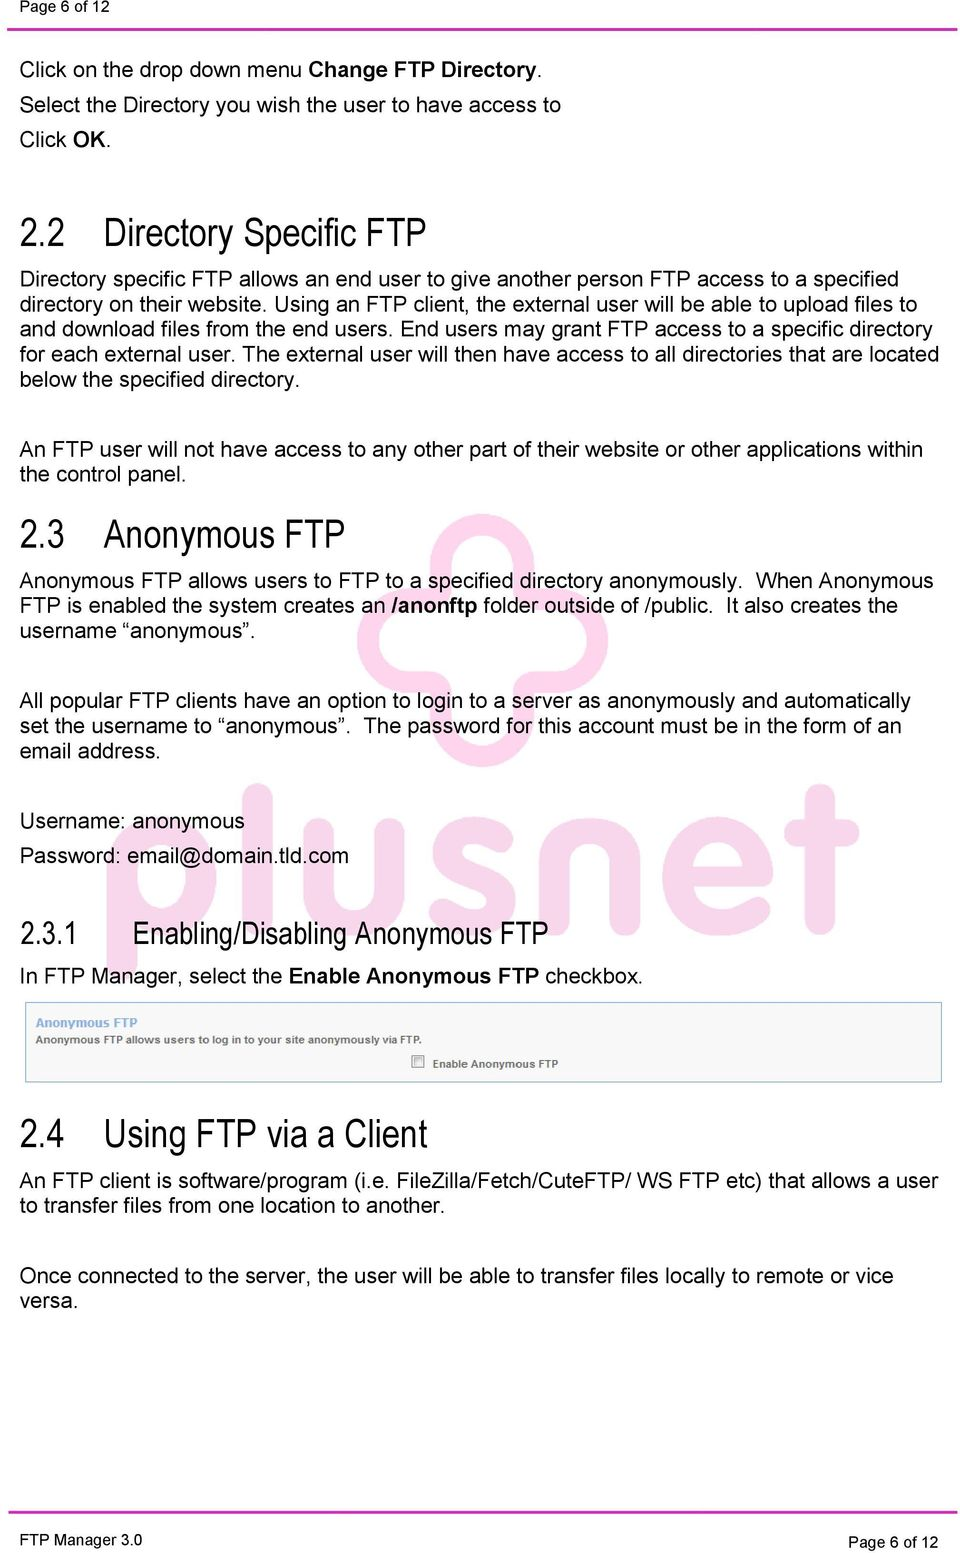 Using an FTP client, the external user will be able to upload files to and download files from the end users. End users may grant FTP access to a specific directory for each external user.